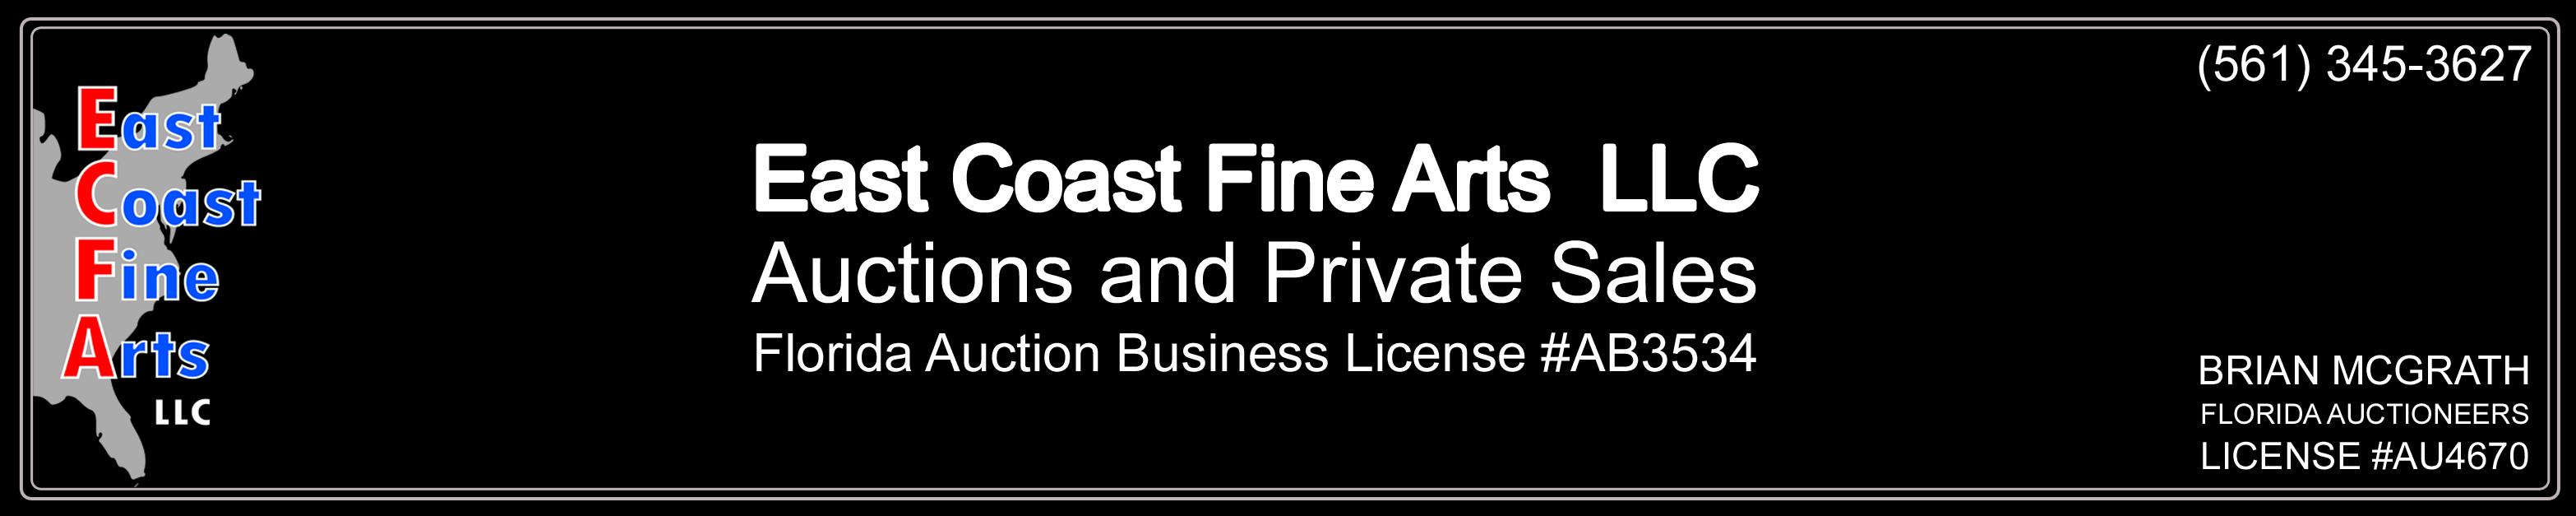 East Coast Fine Arts LLC